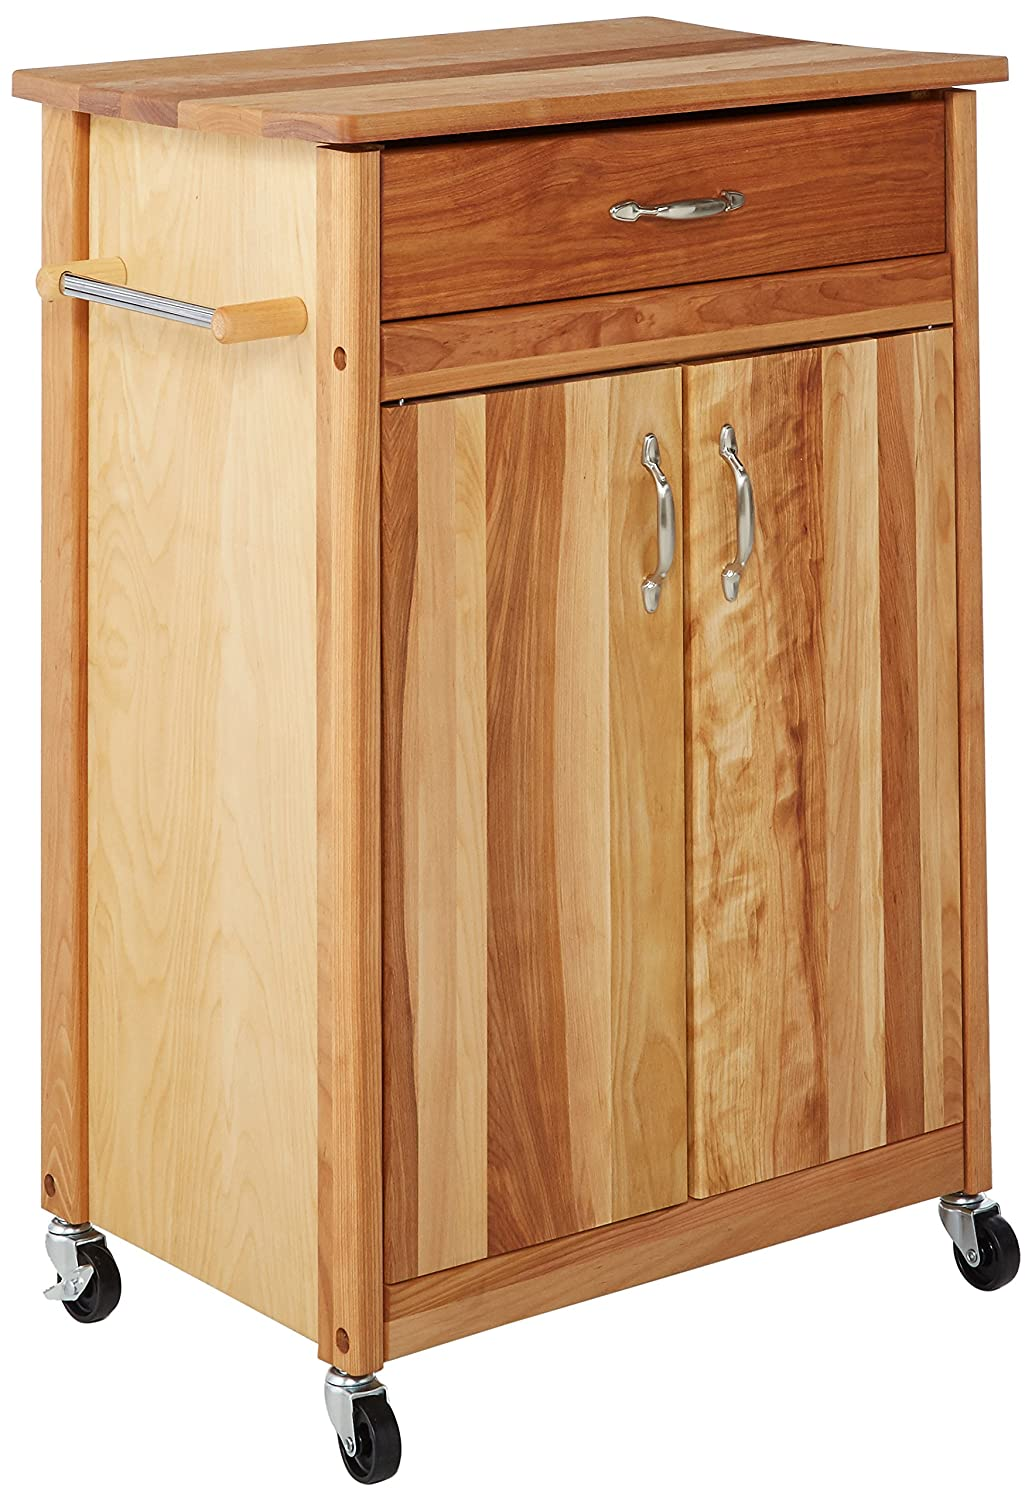 Incredible Catskill Craftsmen Butcher Block Cart With Flat Doors Pdpeps Interior Chair Design Pdpepsorg